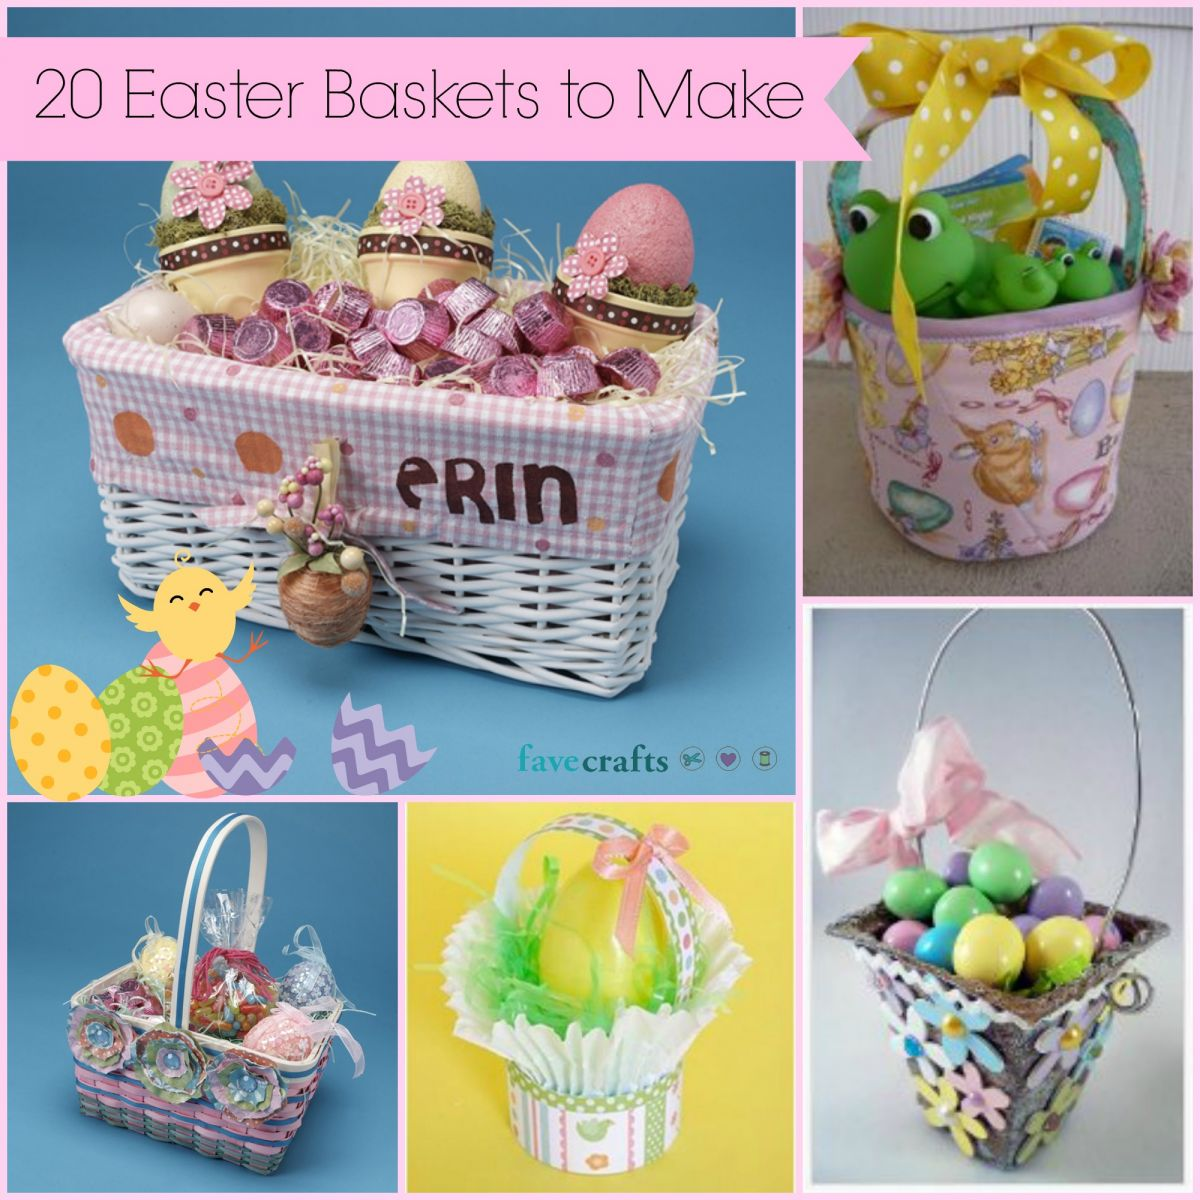 20 Easter Baskets to Make